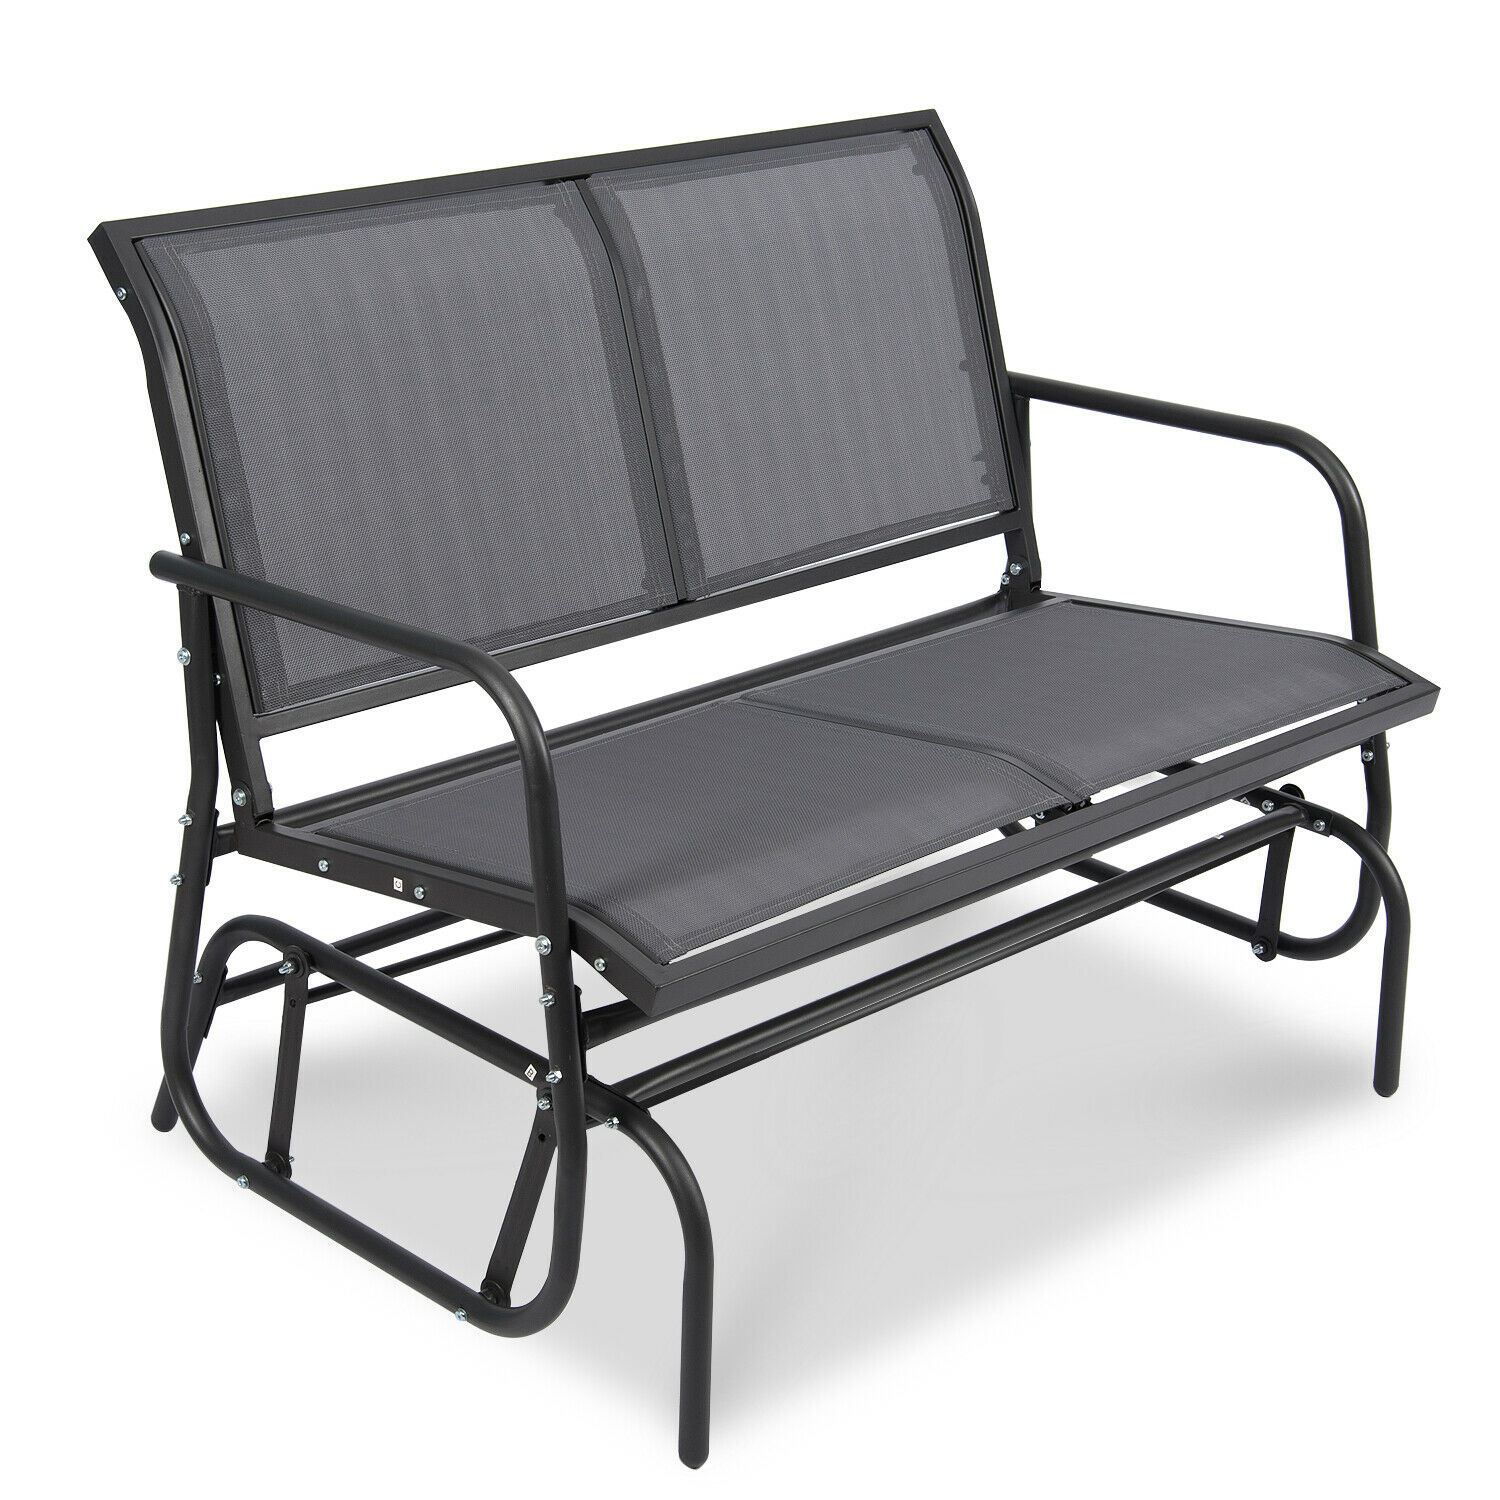 Patio Garden Glider 2 Person Swing Bench Rocking Chair Porch Outdoor Furniture Inside 2 Person Loveseat Chair Patio Porch Swings With Rocker (View 7 of 25)